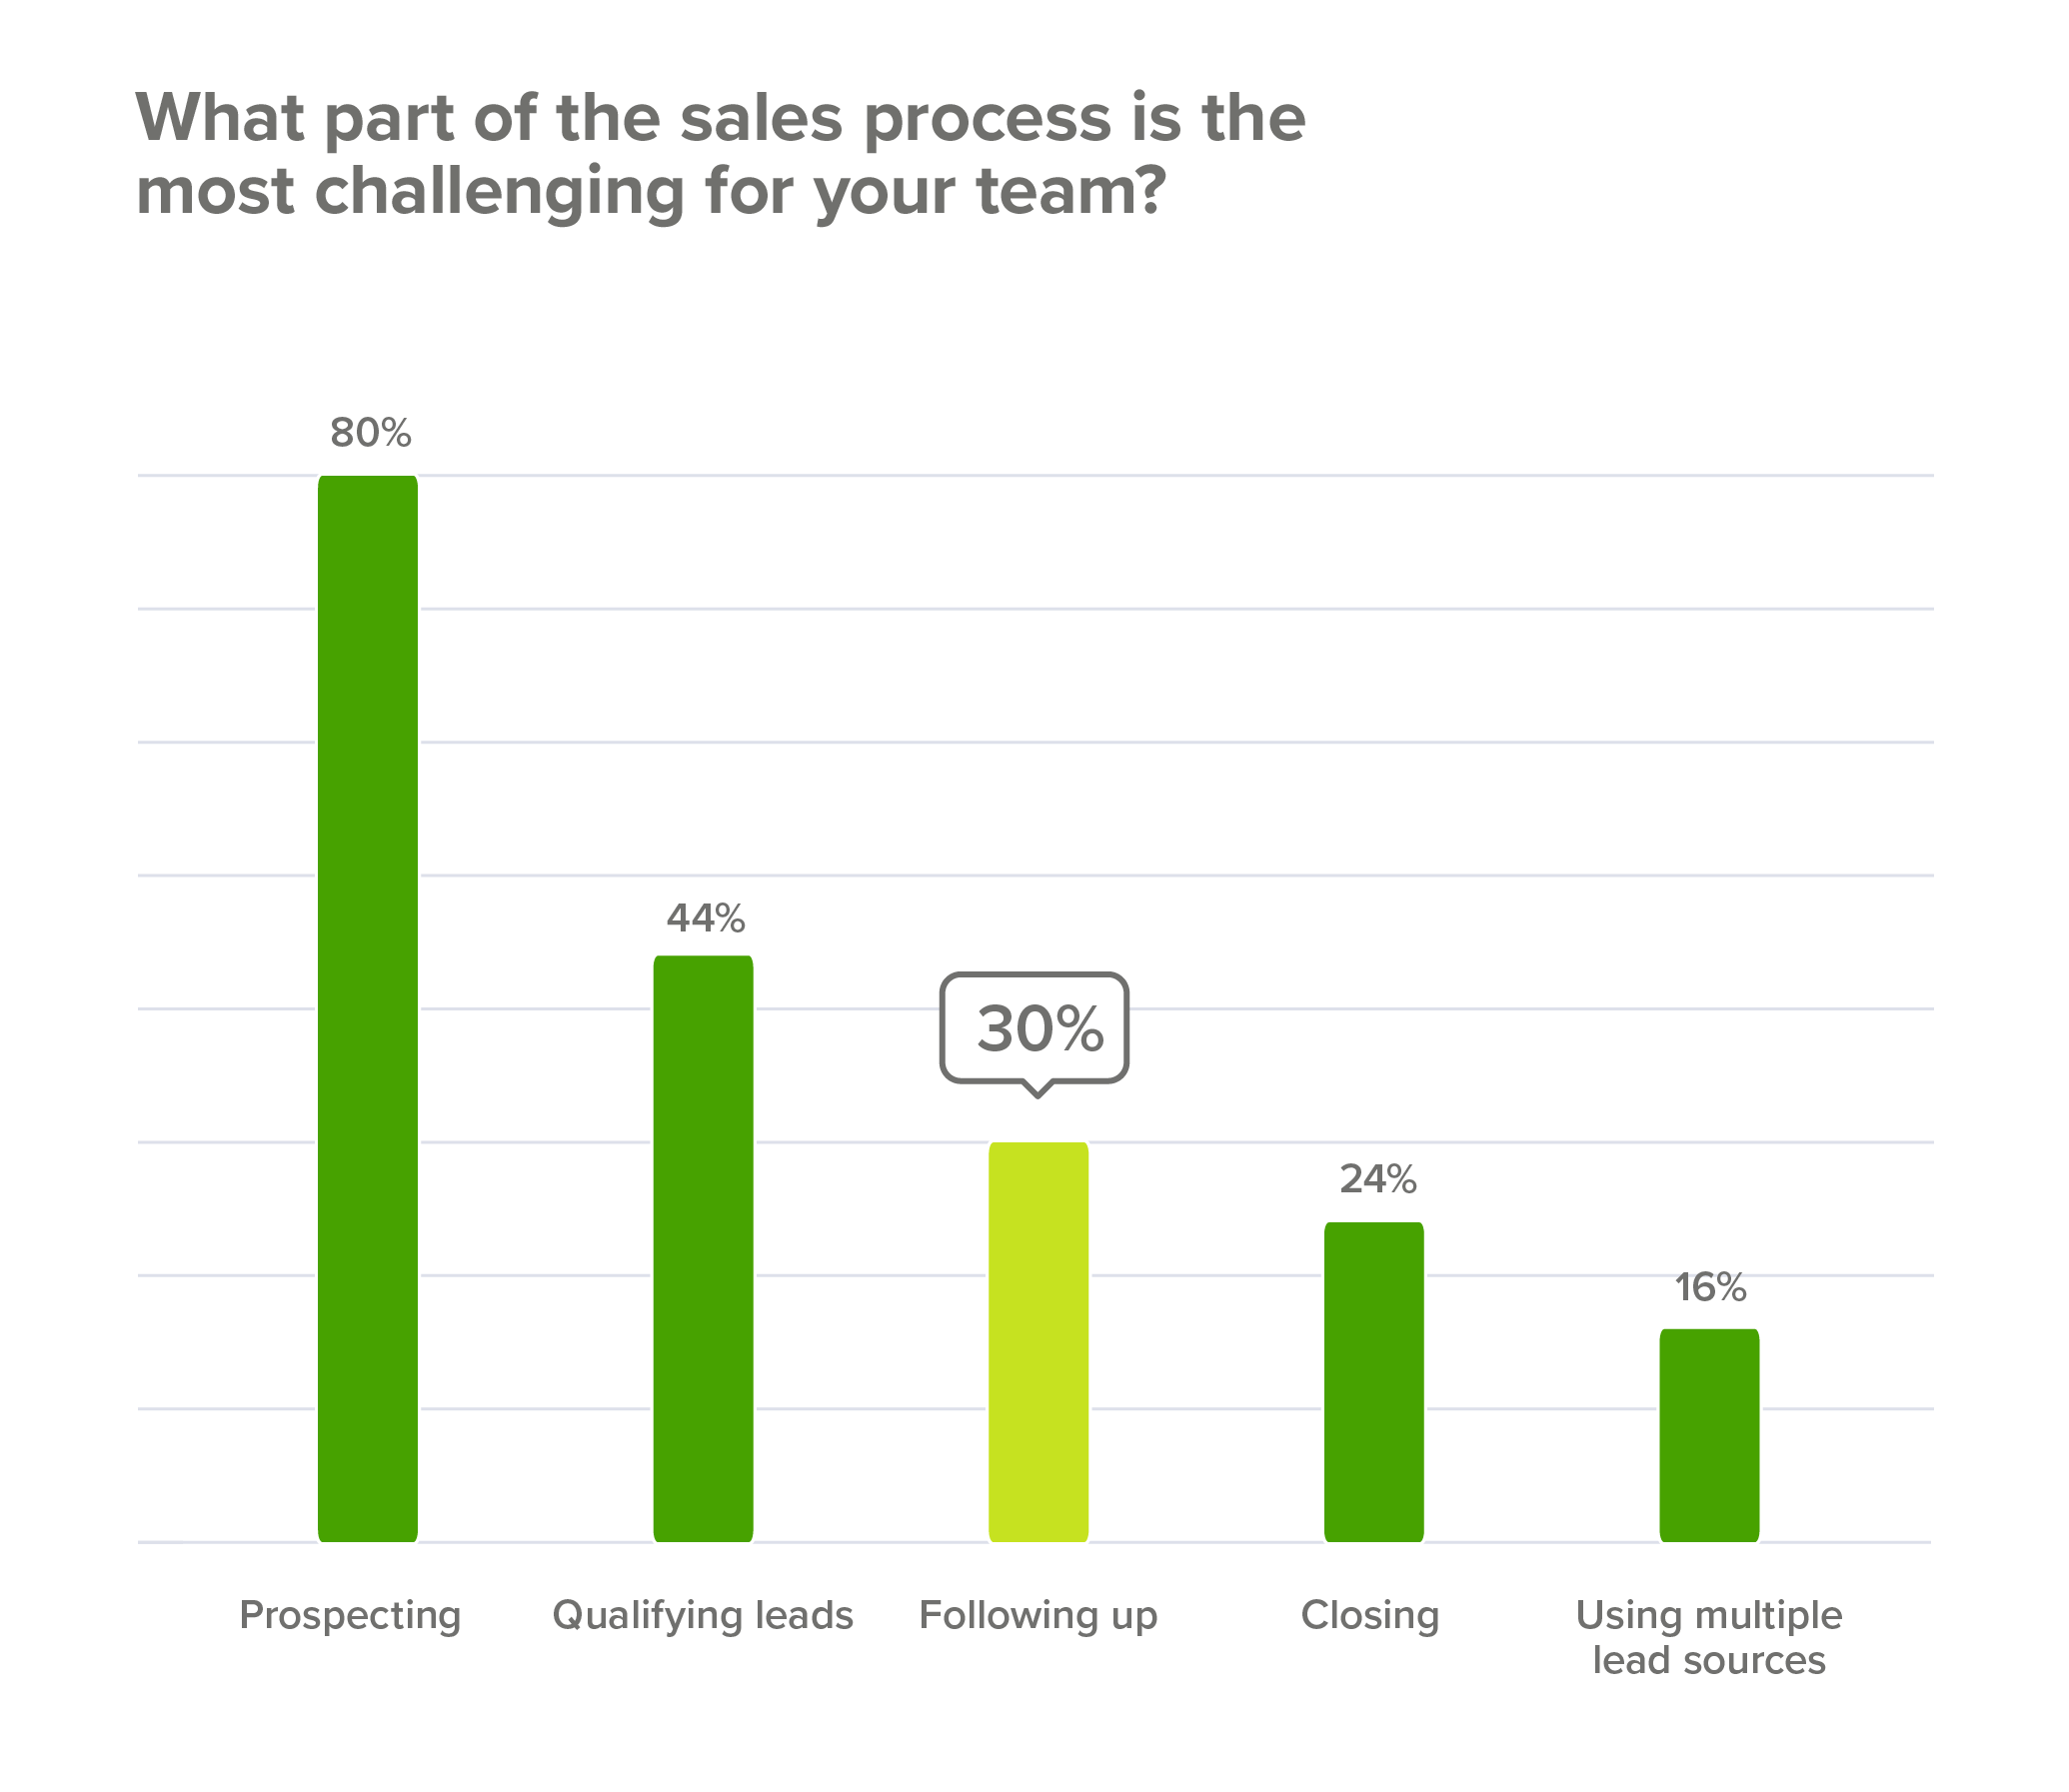 Closing the deal is the fourth most difficult part of the sales process.